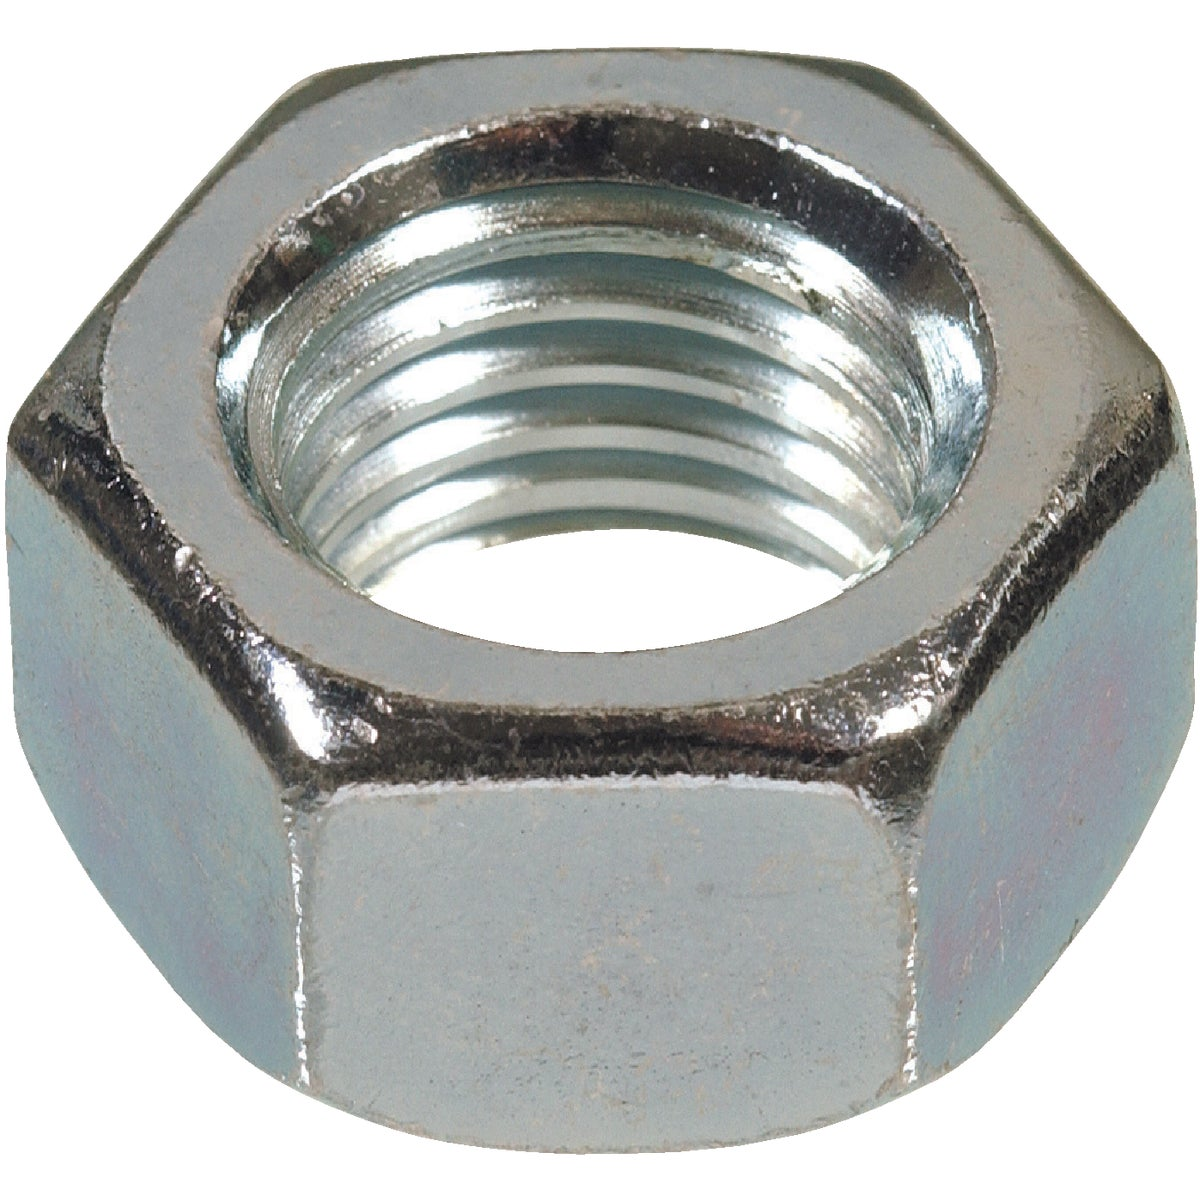 3/8-16 C THREAD HEX NUT